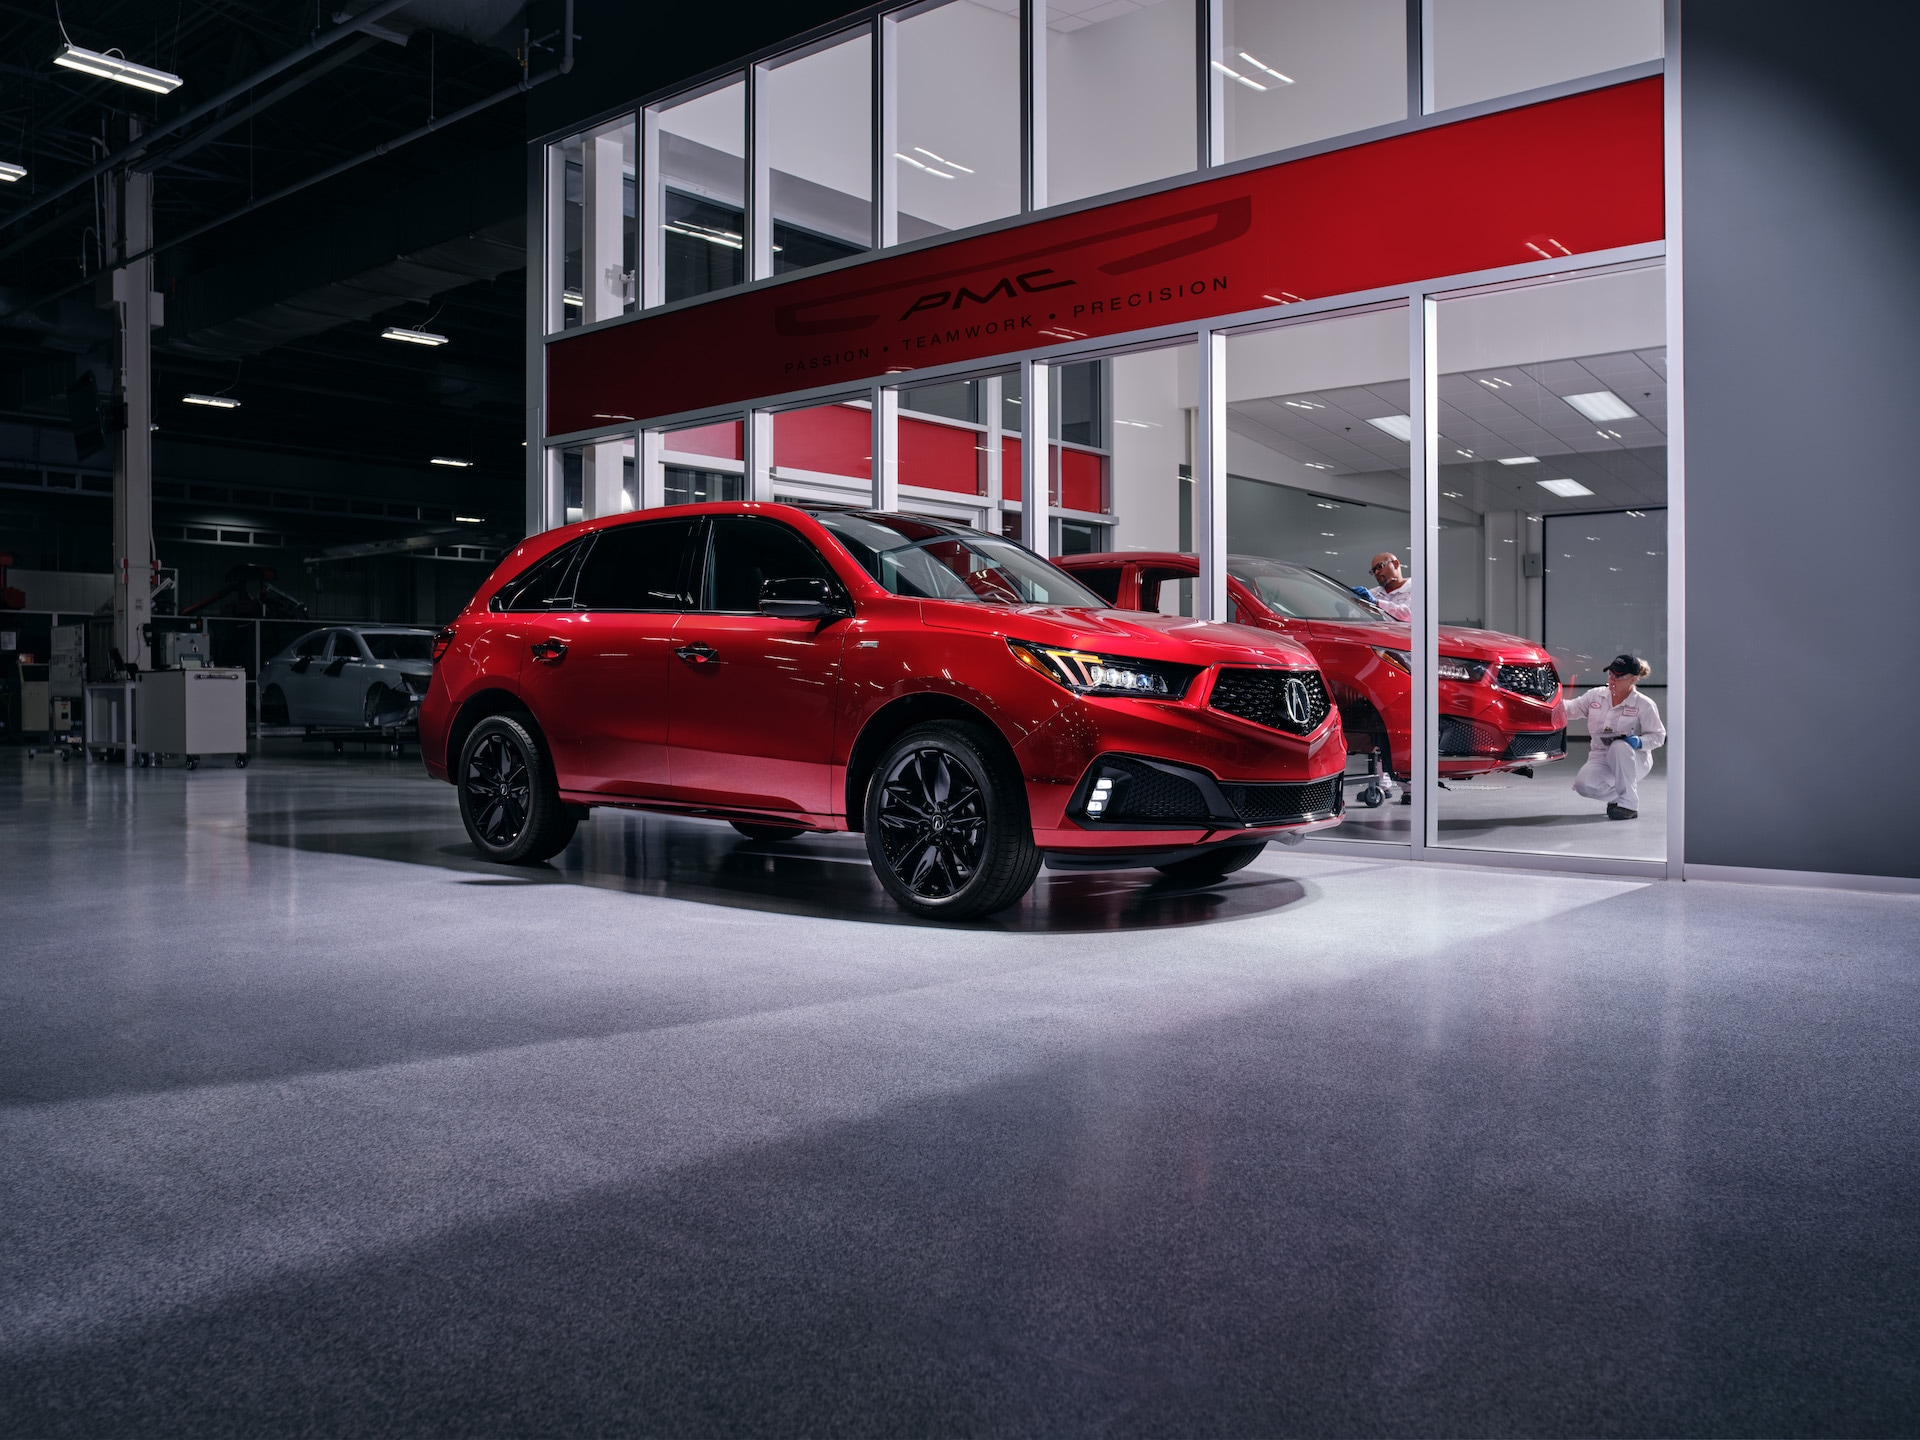 Comparison of the 2020 Acura MDX & 2020 Toyota Highlander at Acura Hunt Valley | Red 2020 Acrua MDX parked in garage